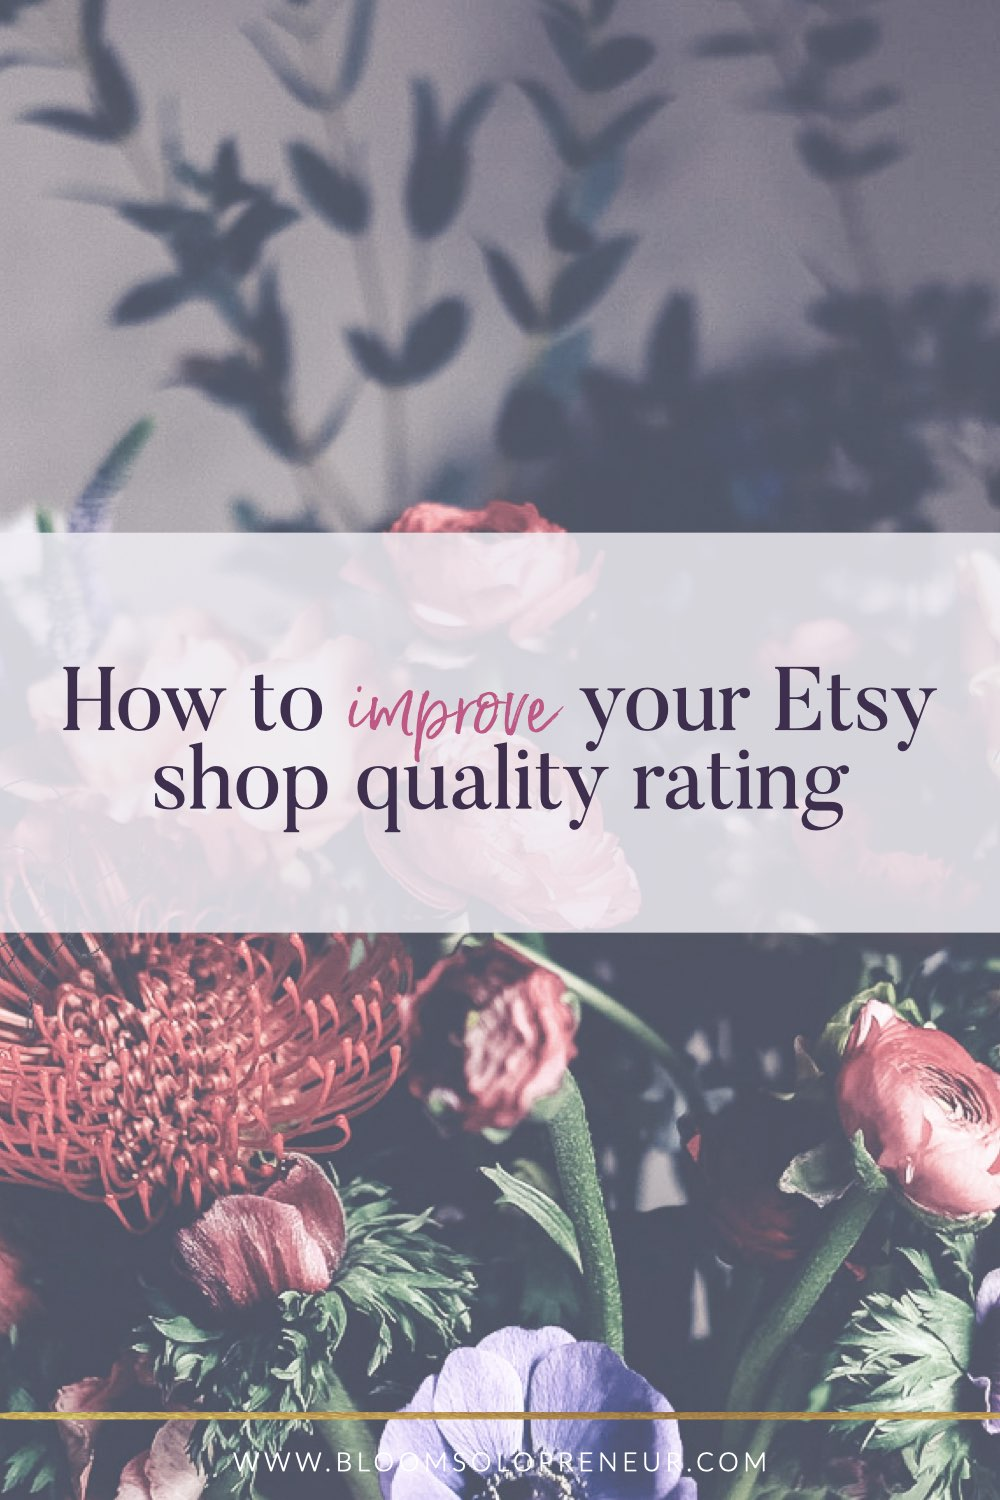 Your Etsy shop quality rating is one of the measures Etsy uses to determine where you are in the search results. Reach the top of the Etsy search by working on and improving your Etsy Shop Quality rating. This includes Customer service, bounce rate and order dissatisfaction rate. Learn how to improve your Etsy ranking in search. #howtosellonetsy #howtosellonetsy #craftbusiness #handmadebusiness #creativebusiness #bloomsolopreneur